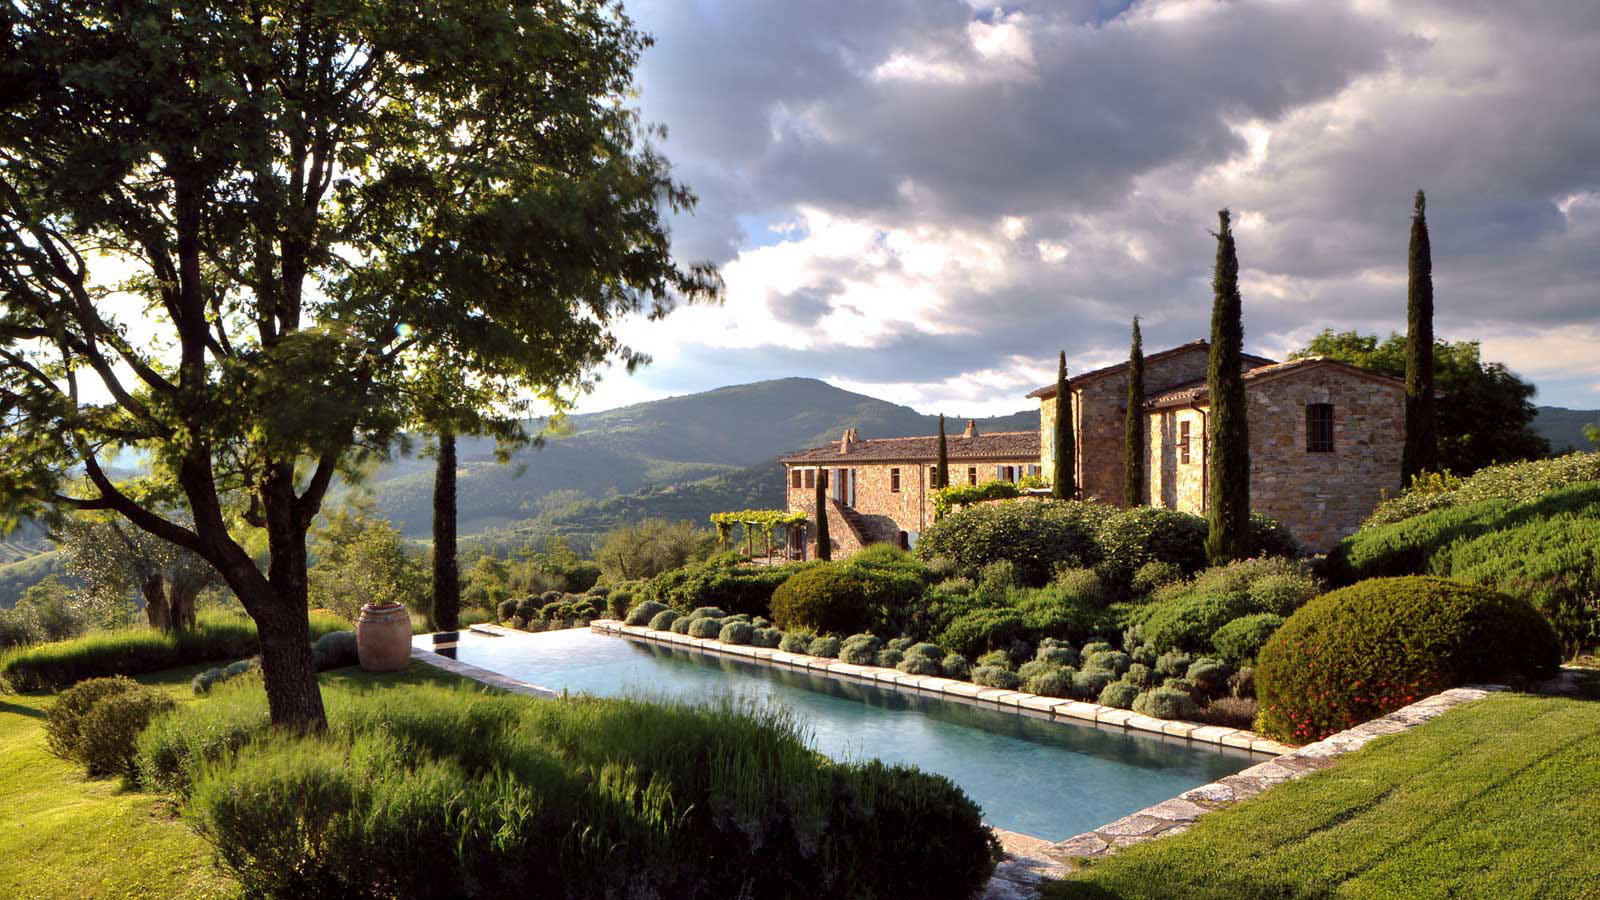 Castello di reschio estate in umbria idesignarch for Hotel design umbria